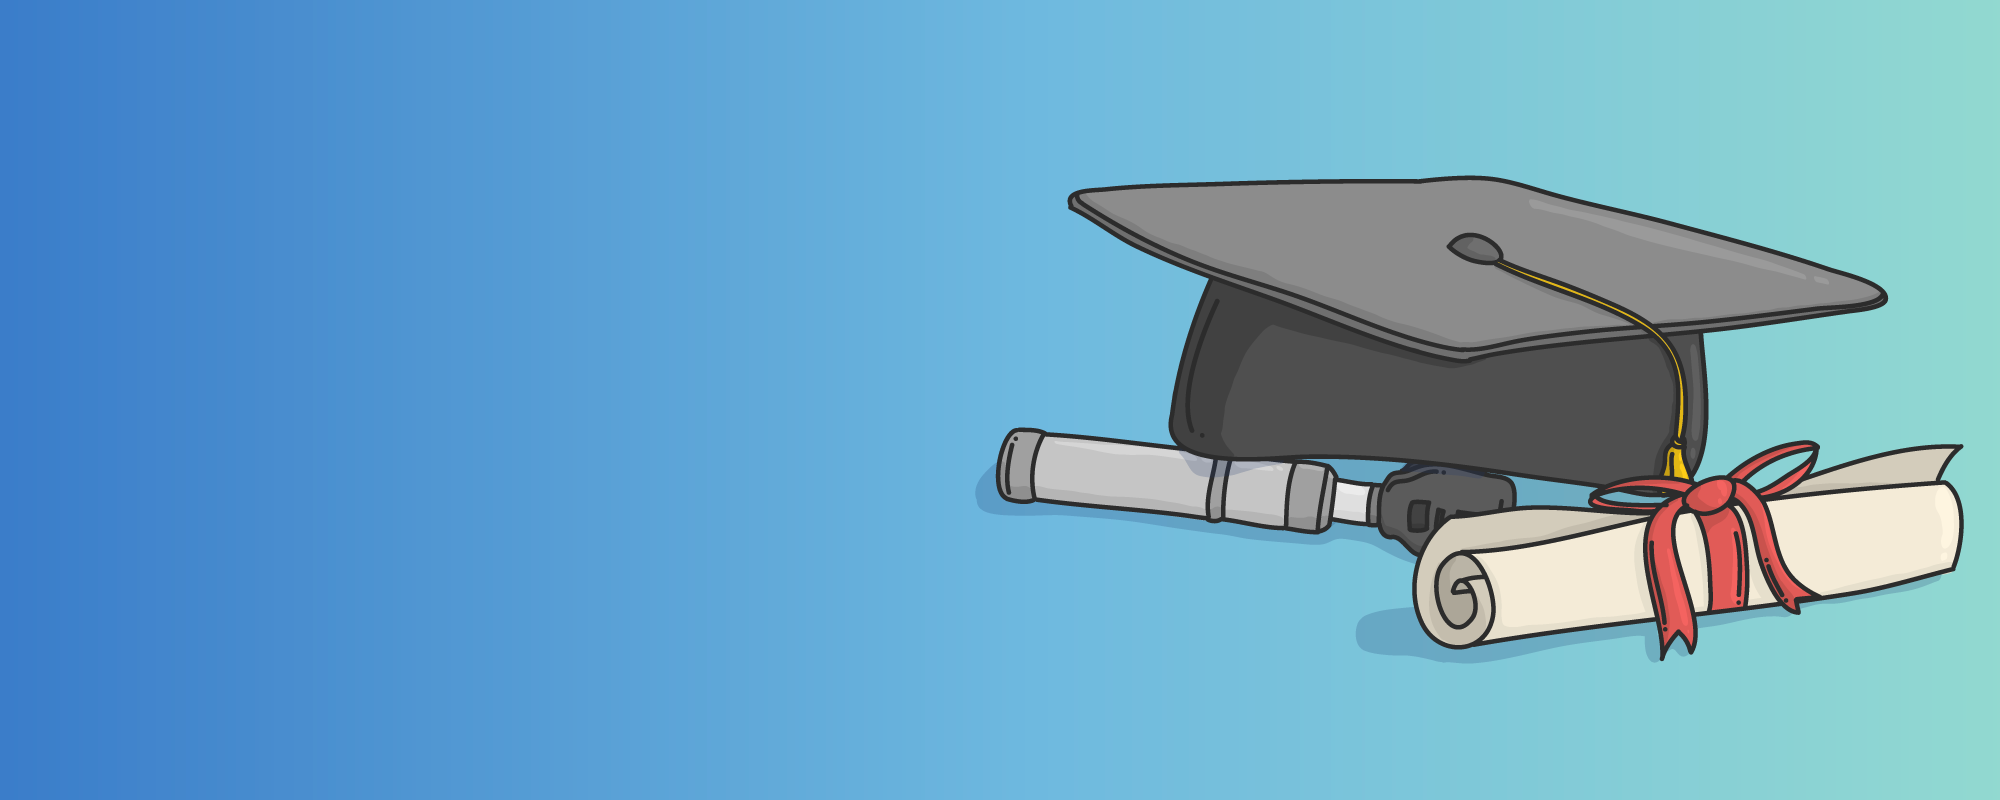 Graduate_Featured-Image.png